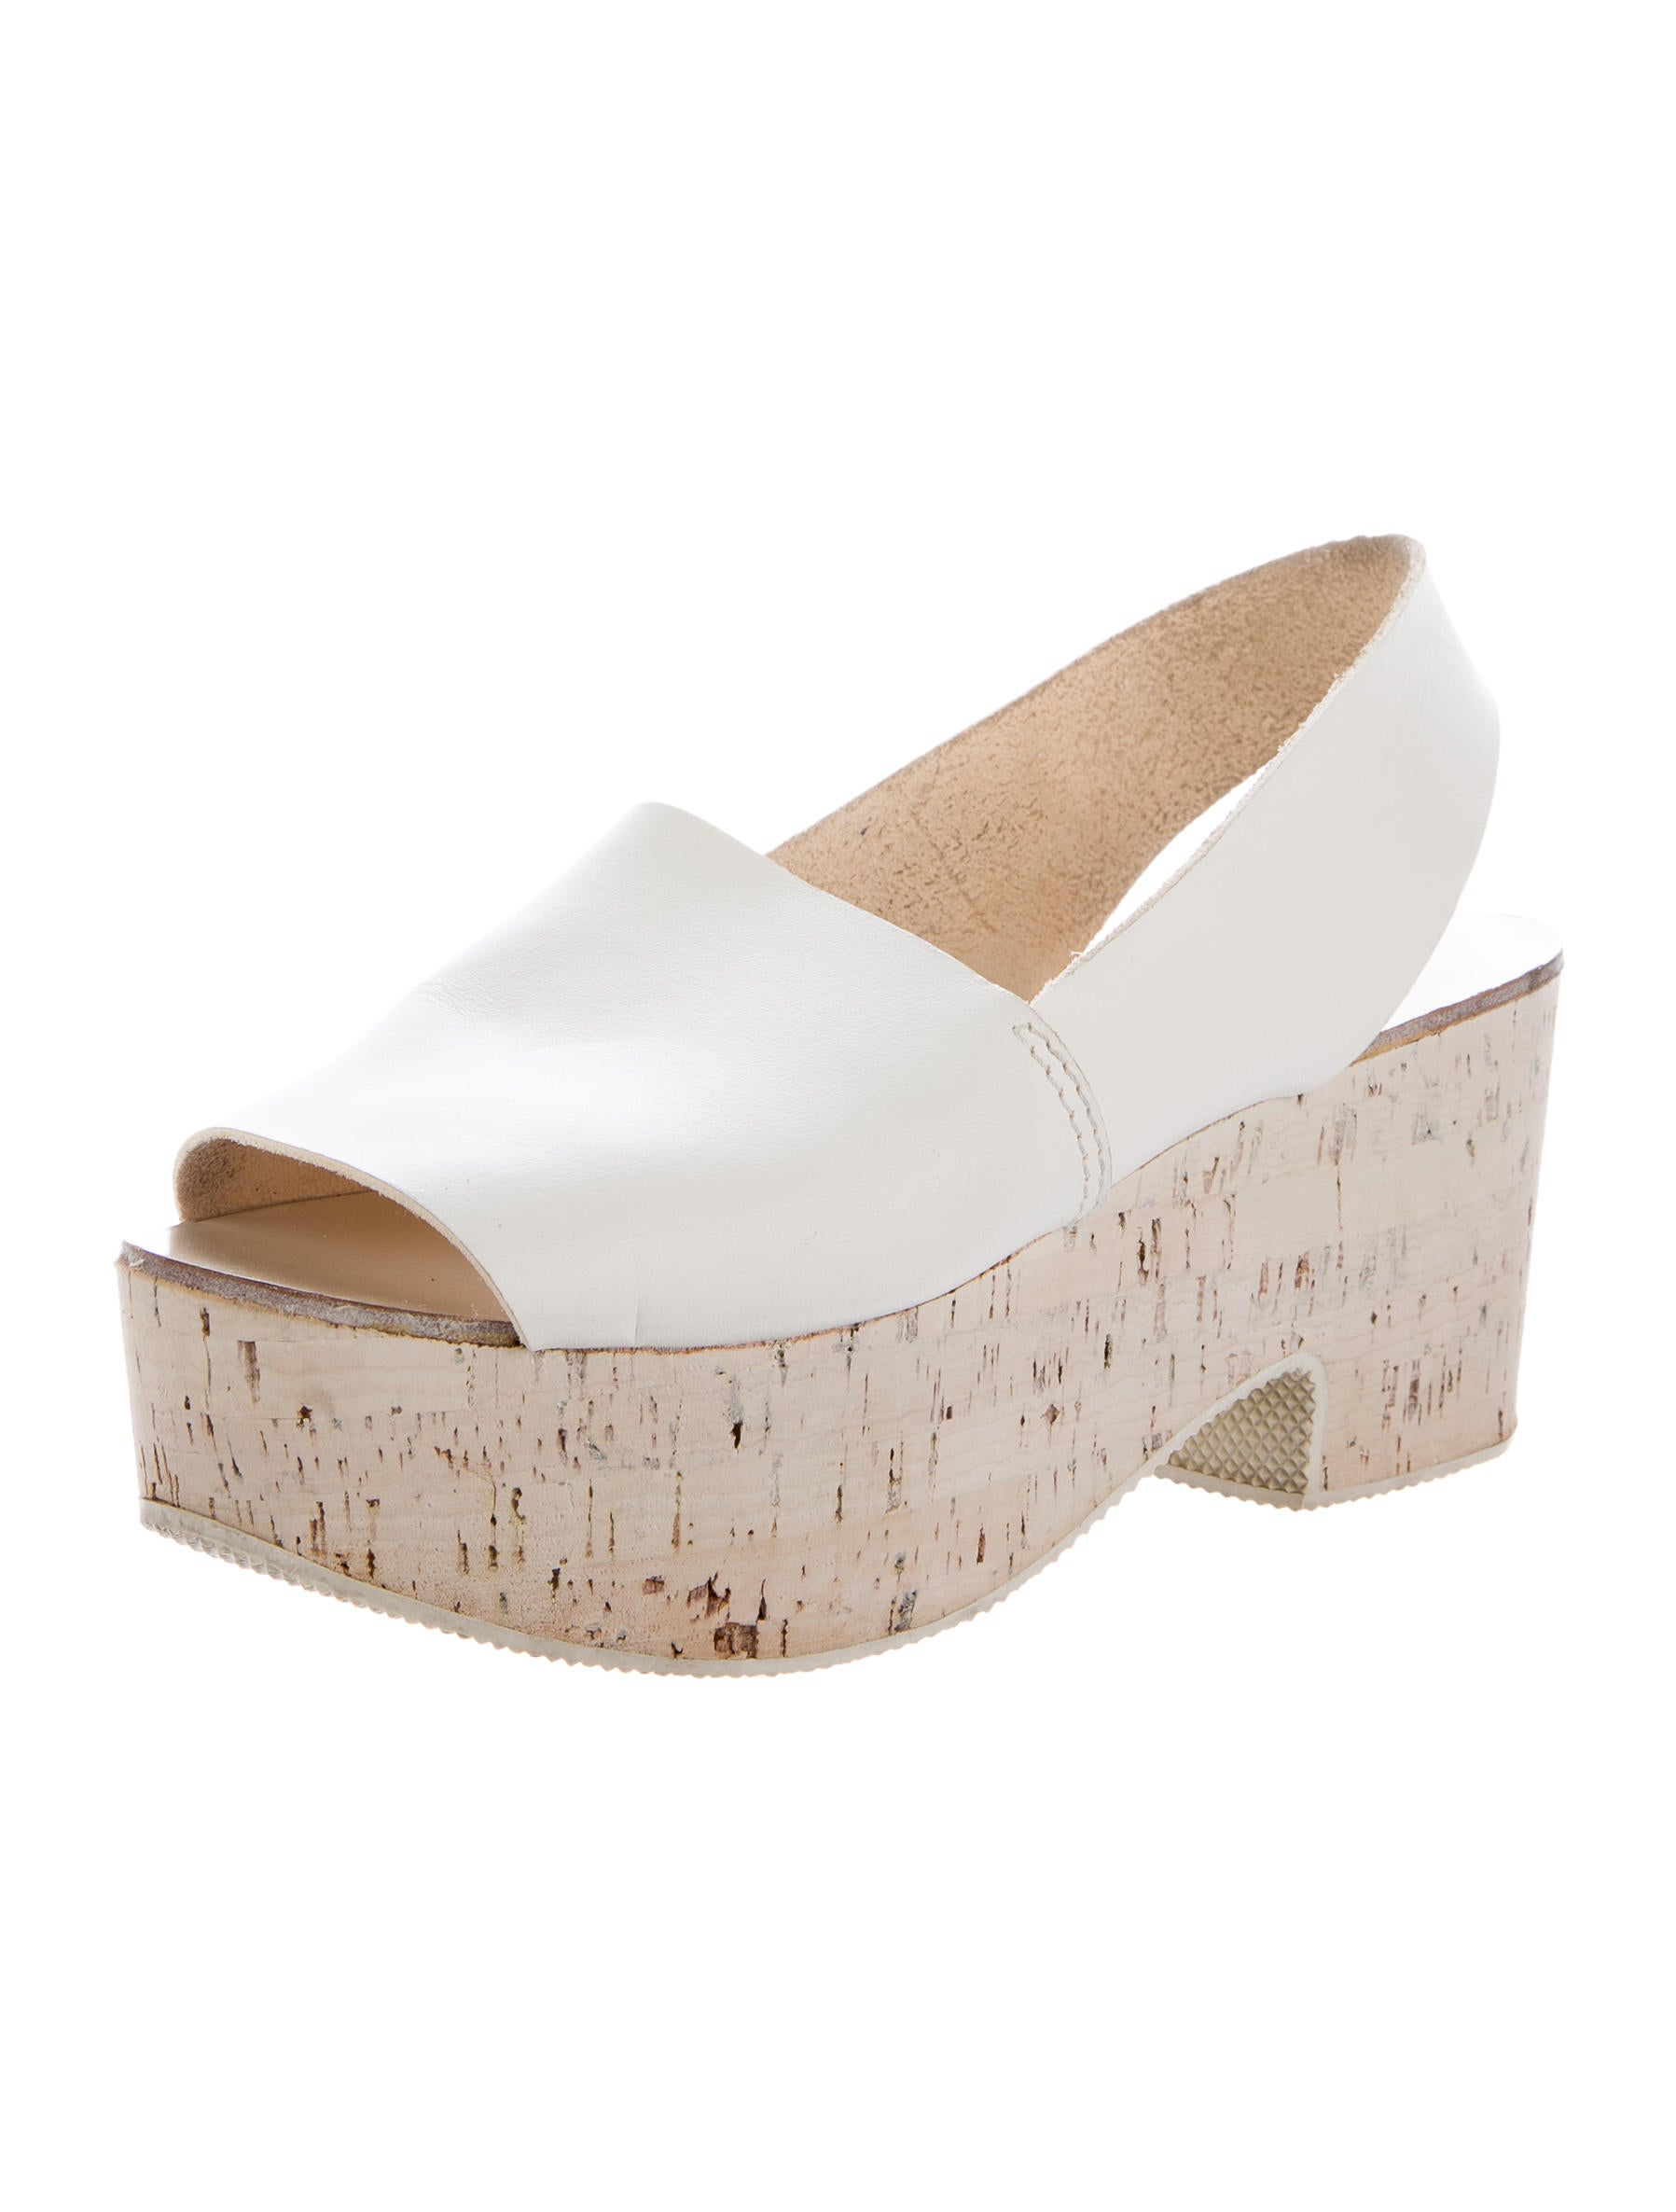 Hache Cork Platform Sandals looking for sale online Inexpensive clearance low shipping fee clearance footaction DT2PCGVHjx